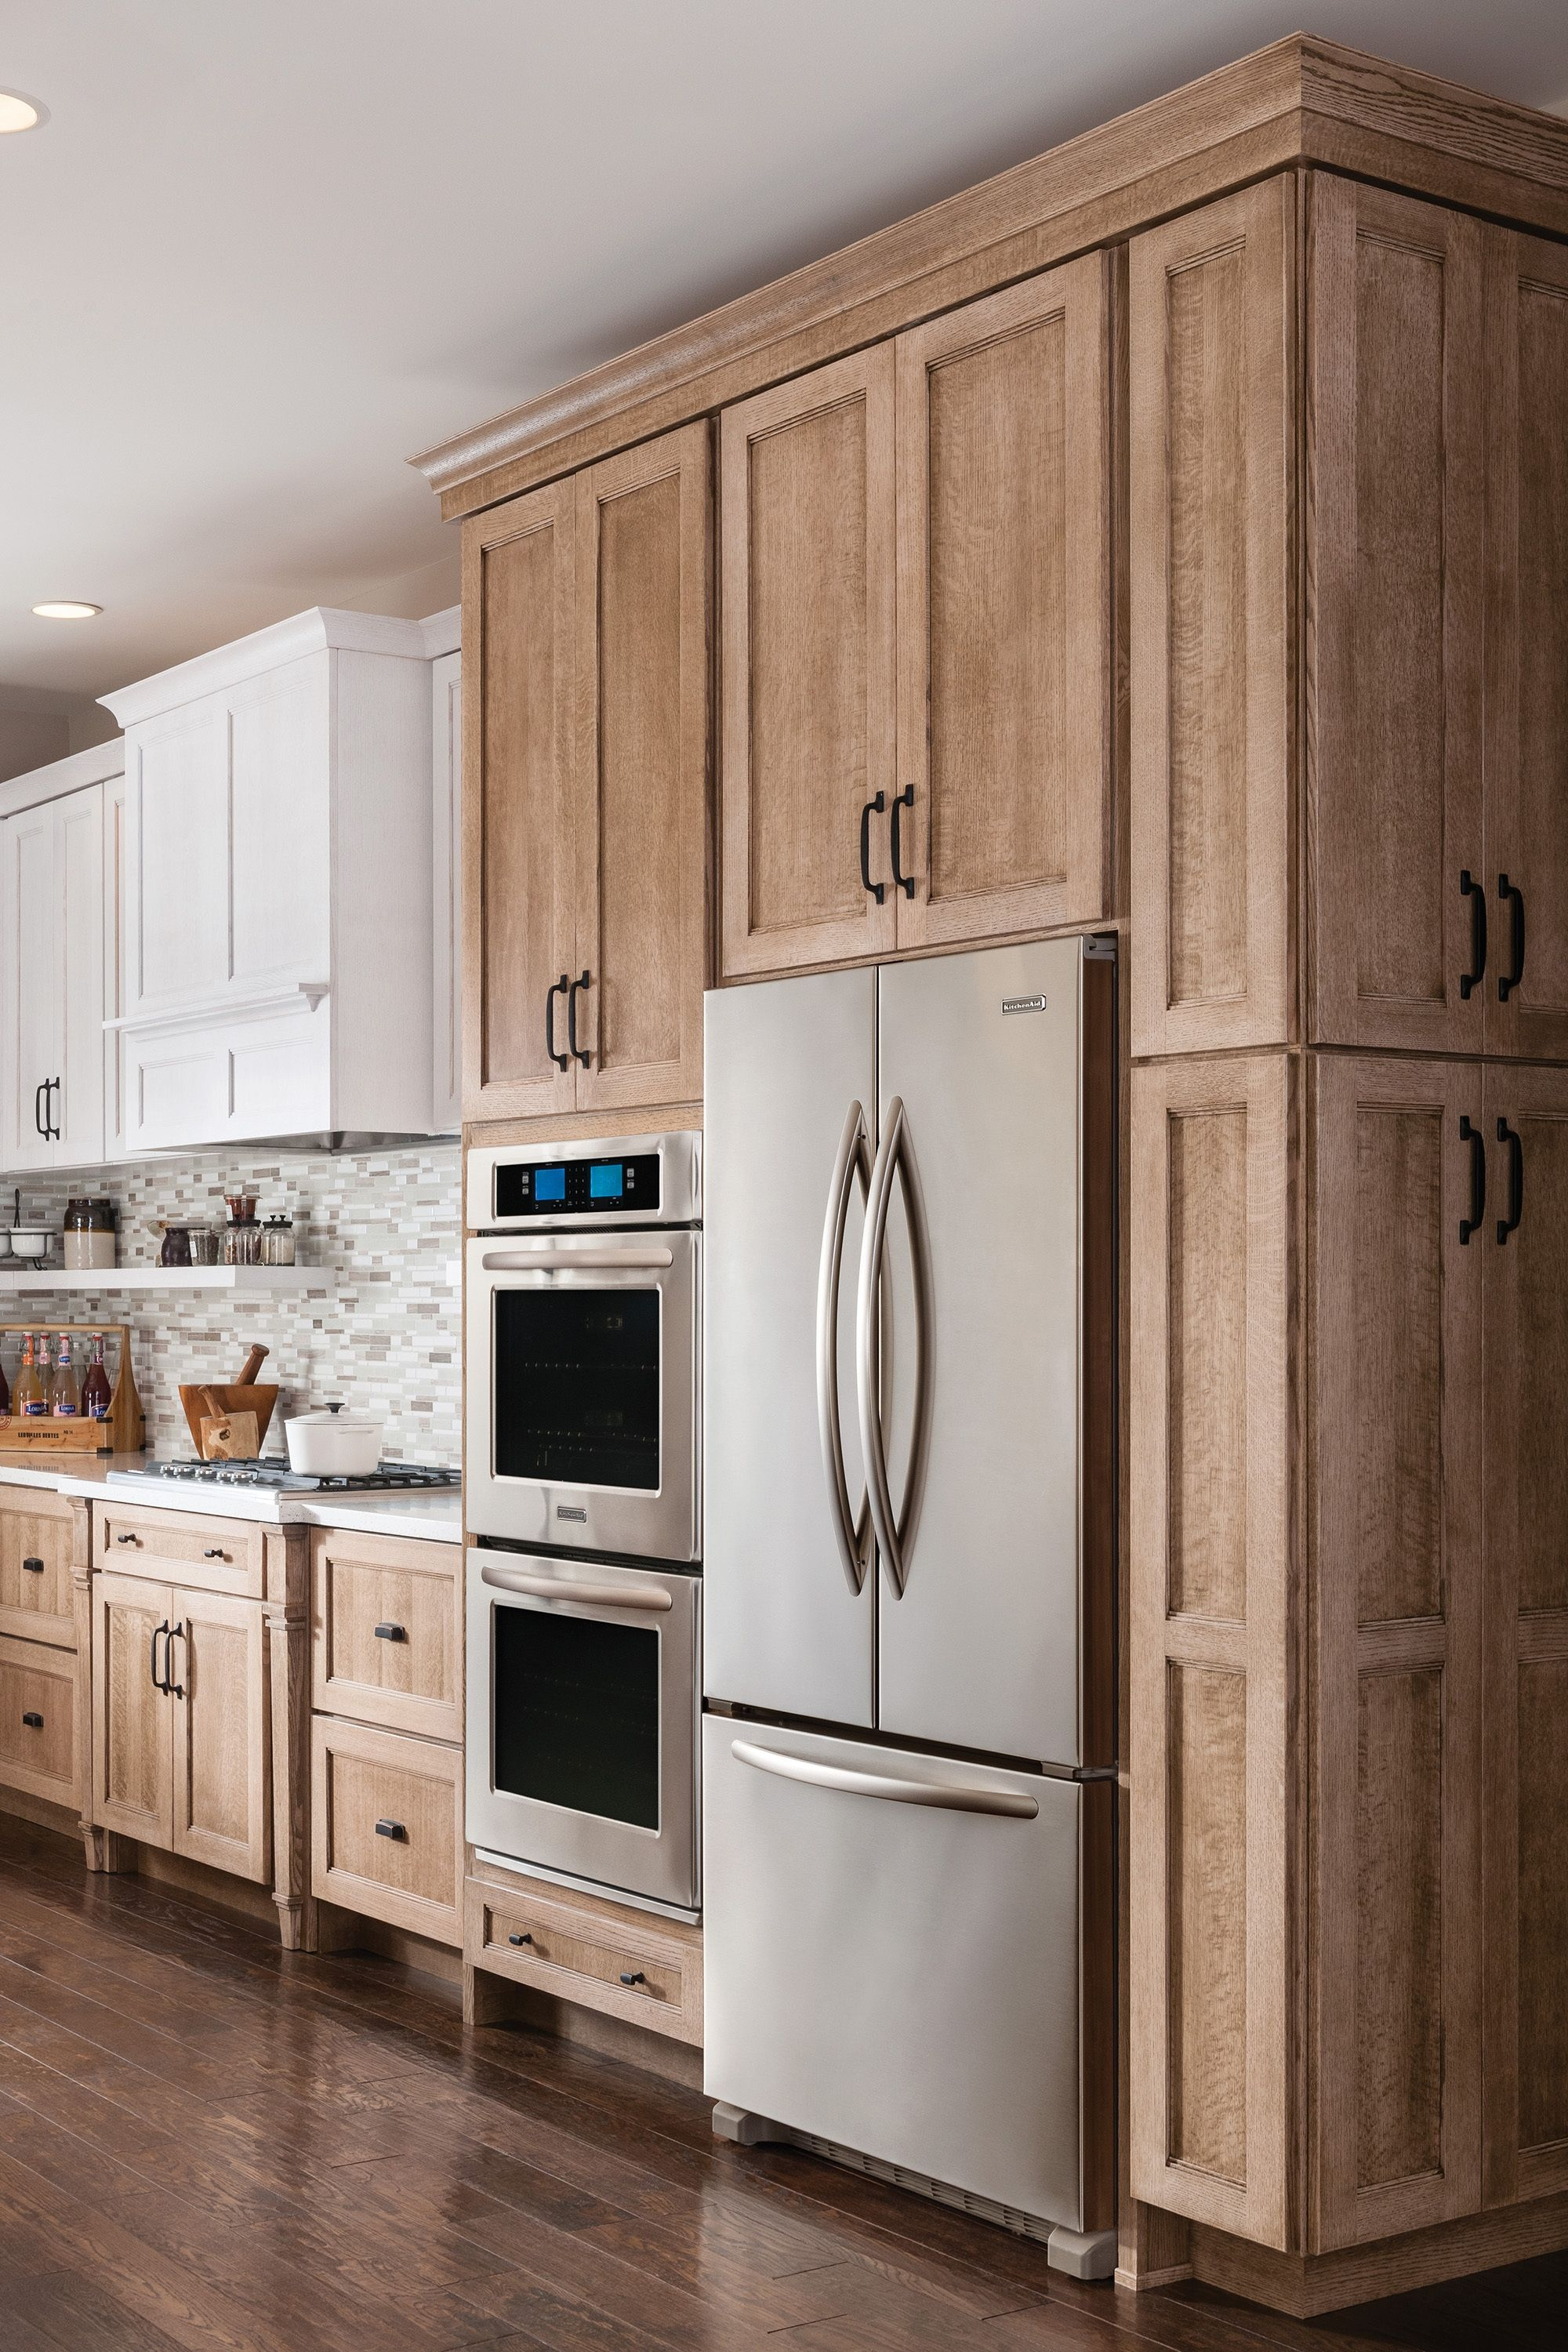 Cappuccino Brown Kitchen Cabinets Then You Definitely Need To Choose The Black Kitchen C Dream Kitchen Cabinets Brown Kitchen Cabinets Kitchen Cabinet Design